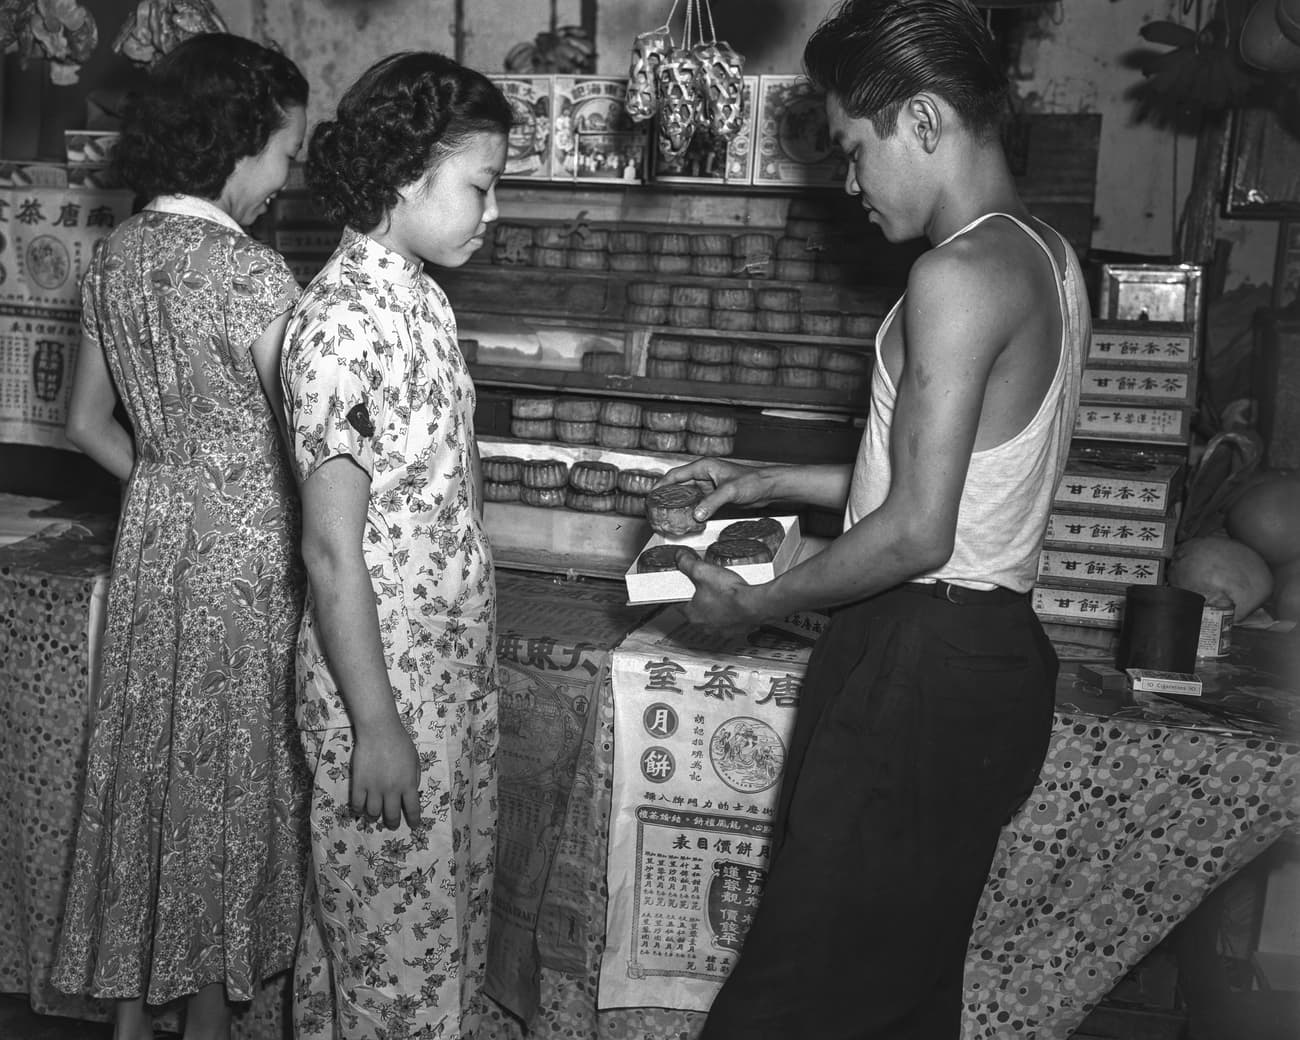 Buying mooncakes for Mid-Autumn Festival, 1951